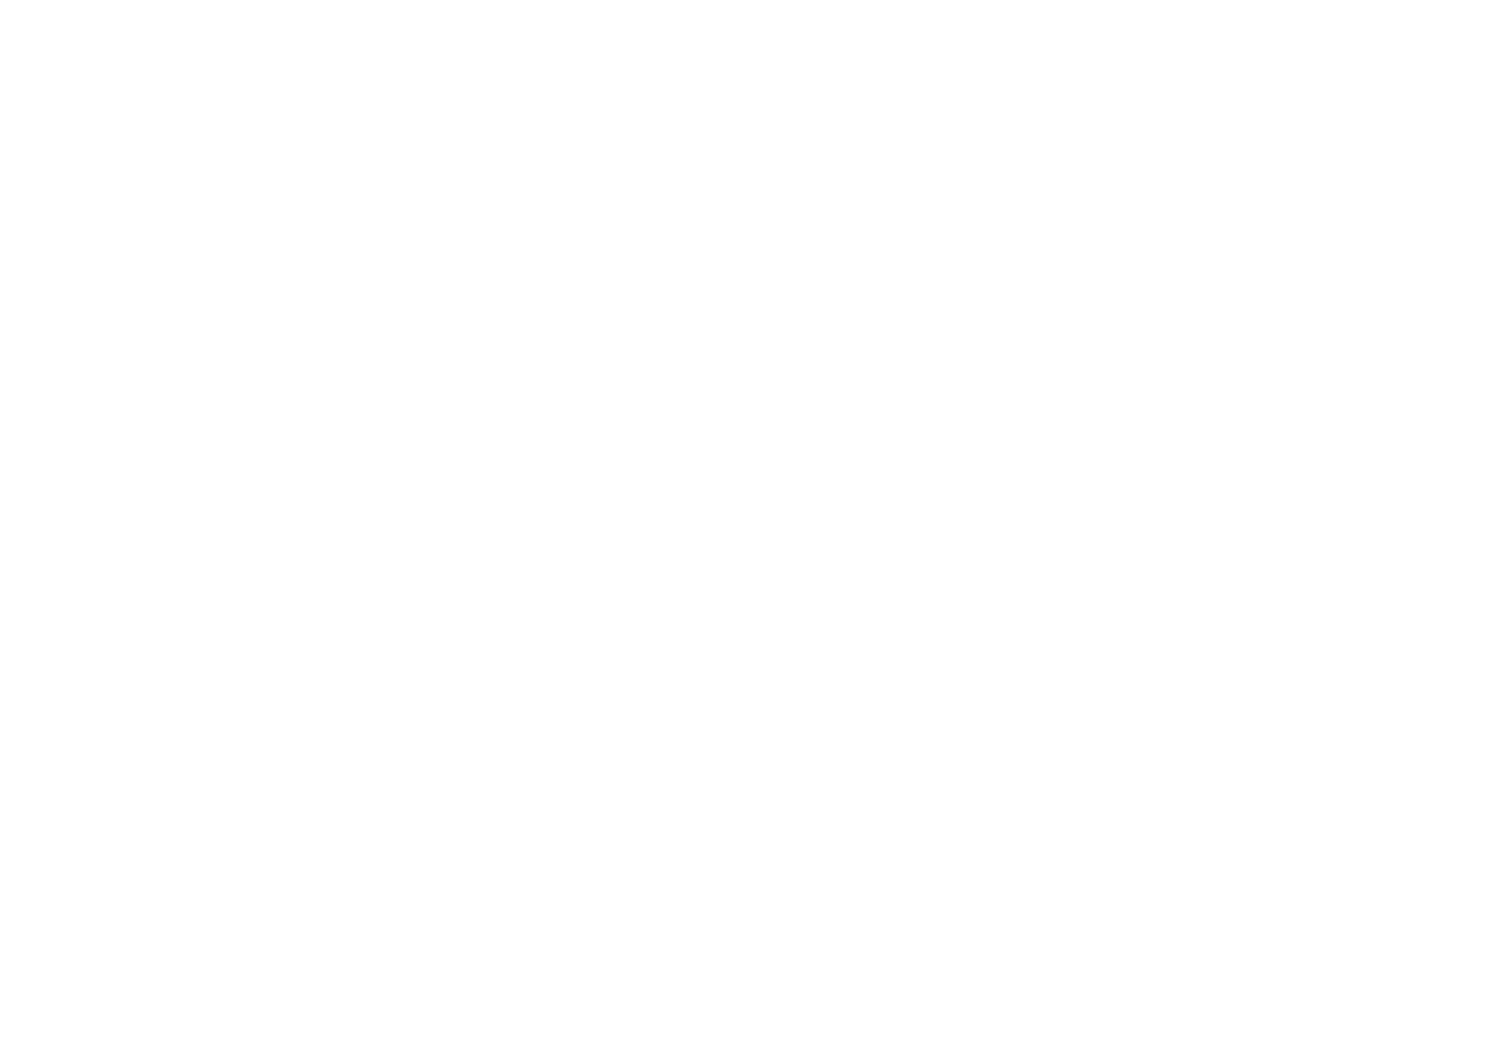 WAGS REDEFINED